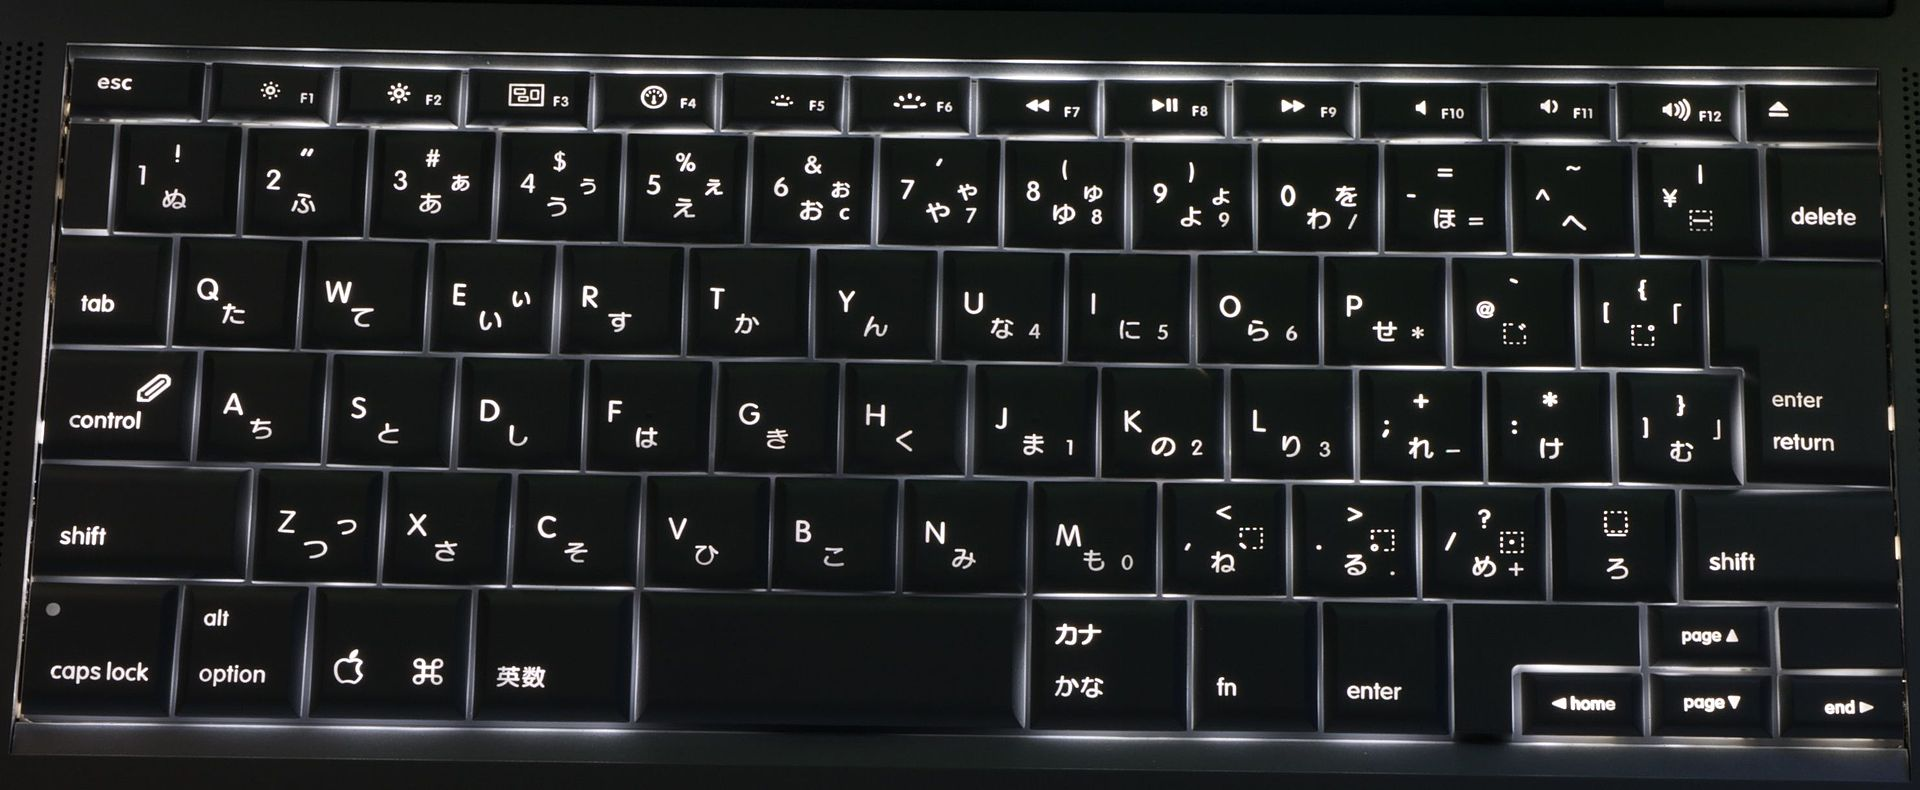 http://upload.wikimedia.org/wikipedia/commons/thumb/2/24/MacBookProJISKeyboard-2.jpg/1920px-MacBookProJISKeyboard-2.jpg